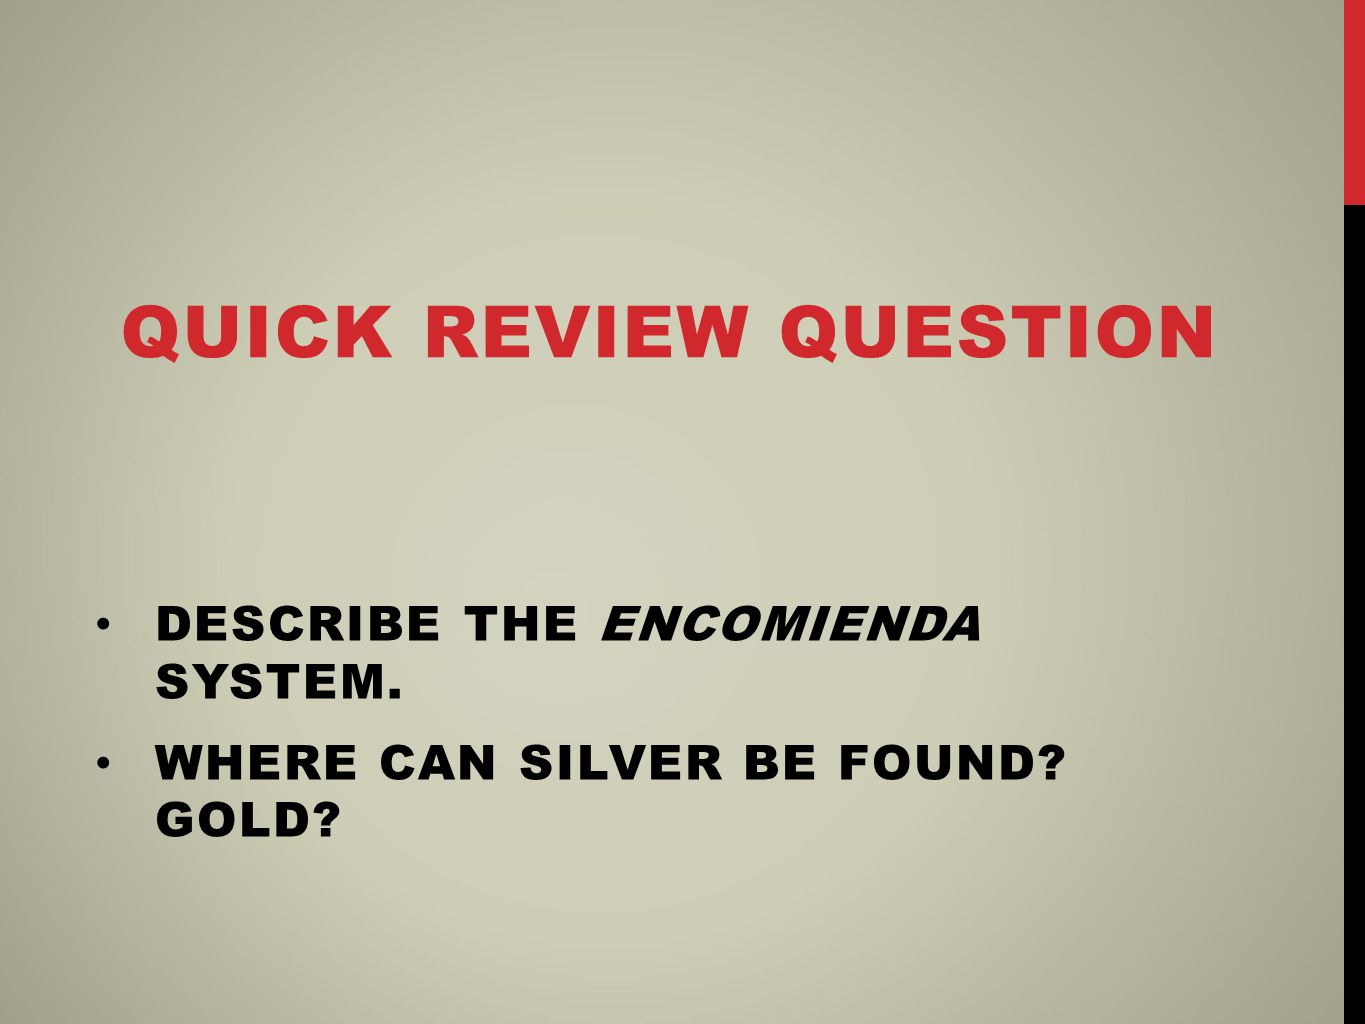 QUICK REVIEW QUESTION DESCRIBE THE ENCOMIENDA SYSTEM. WHERE CAN SILVER BE FOUND GOLD